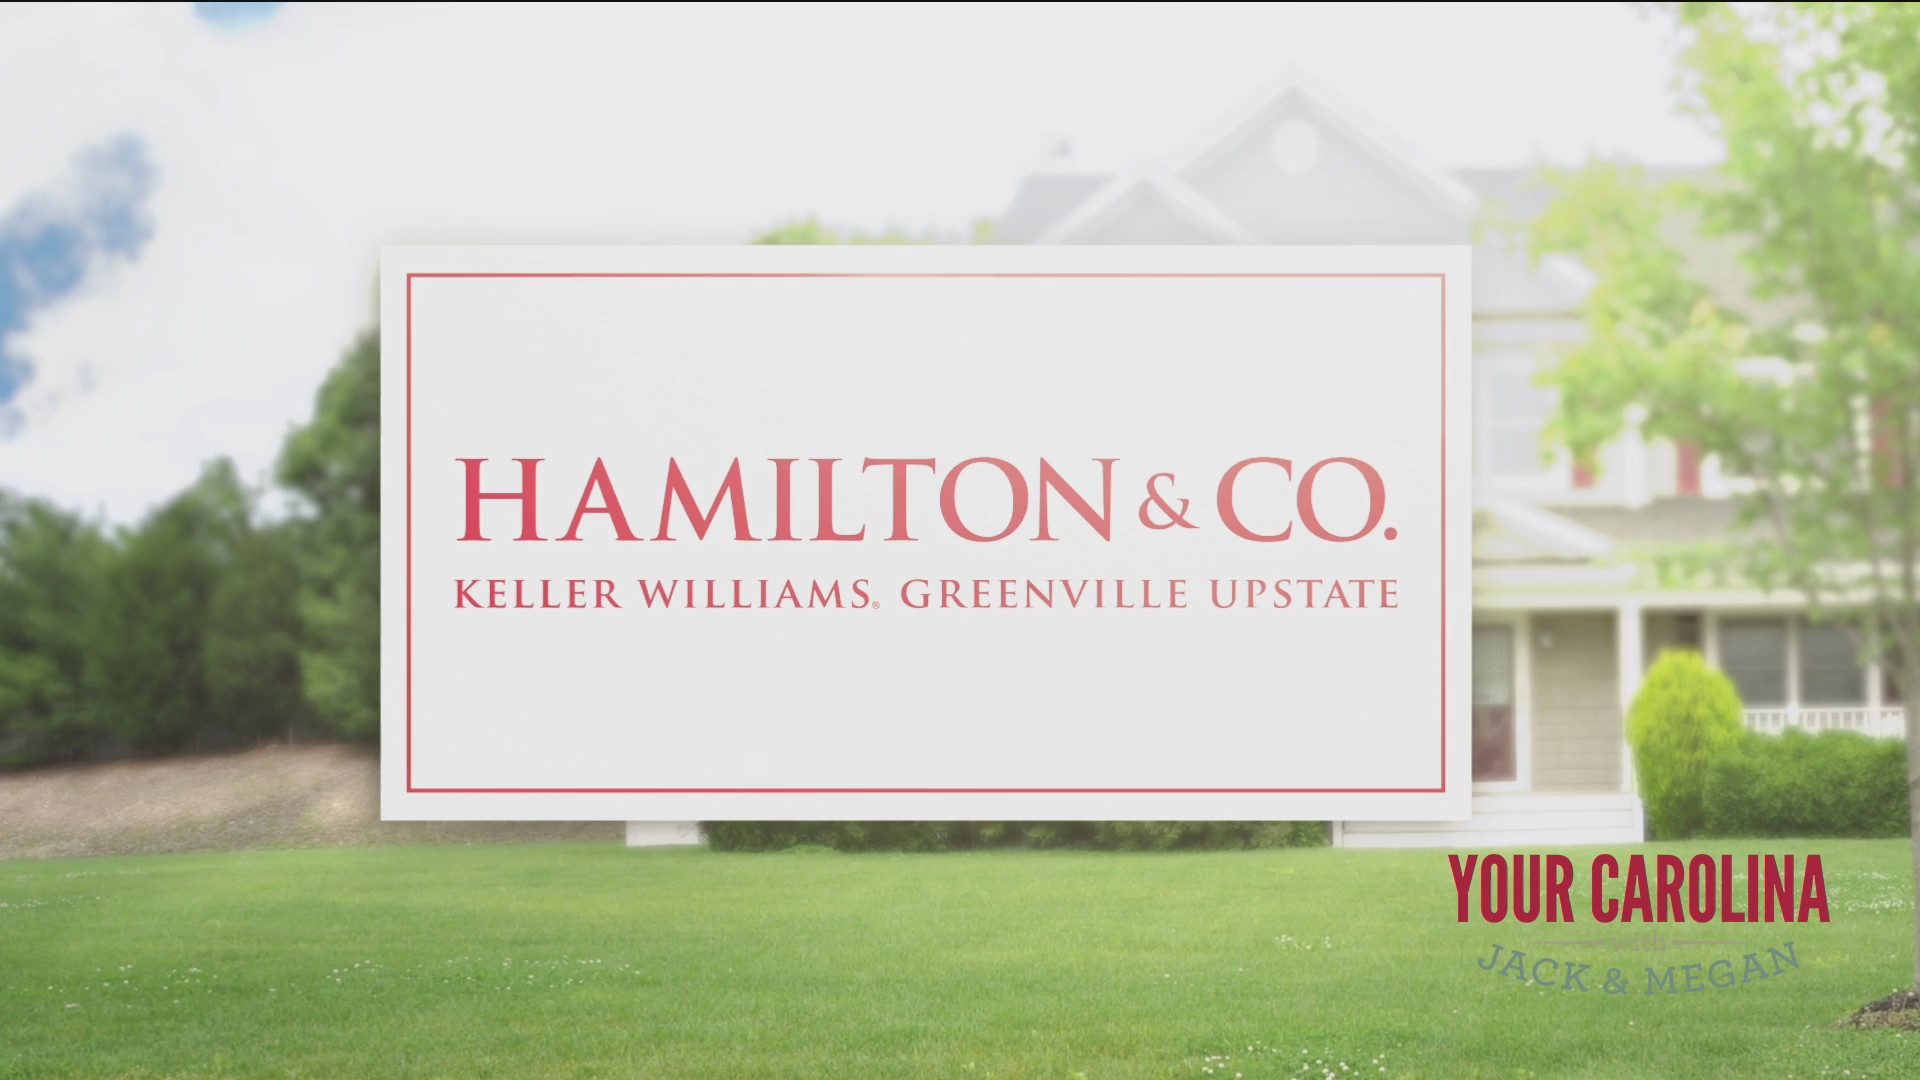 Are you looking for a new home? Our friend Dan Hamilton from Dan Hamilton & Company at Keller Williams has some ideas for you. Let's take a look.